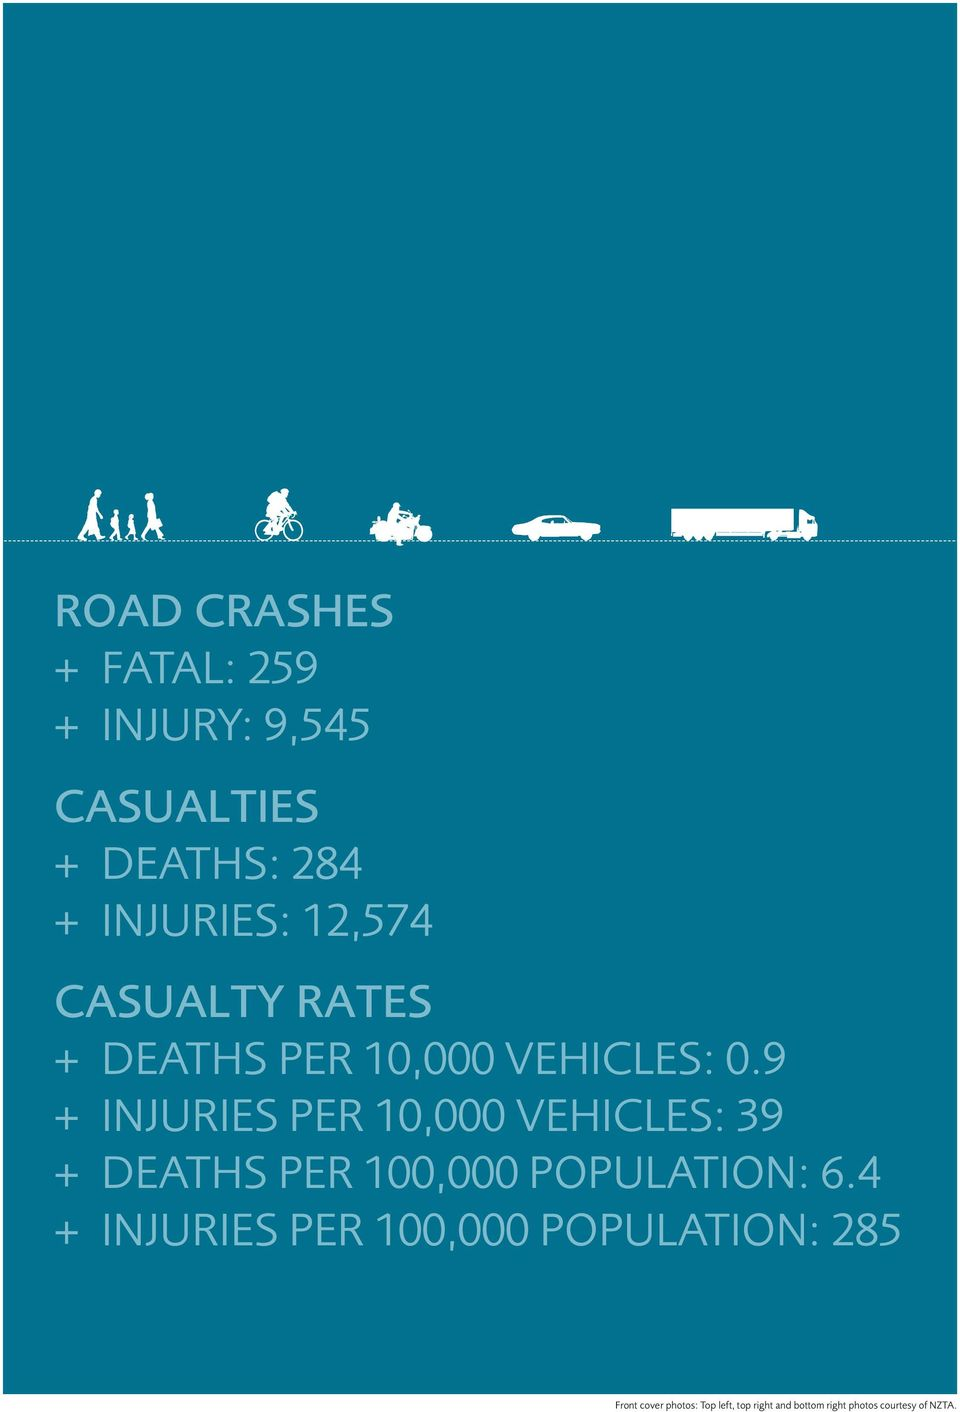 9 + INJURIES PER 10,000 VEHICLES: 39 + DEATHS PER 100,000 POPULATION: 6.